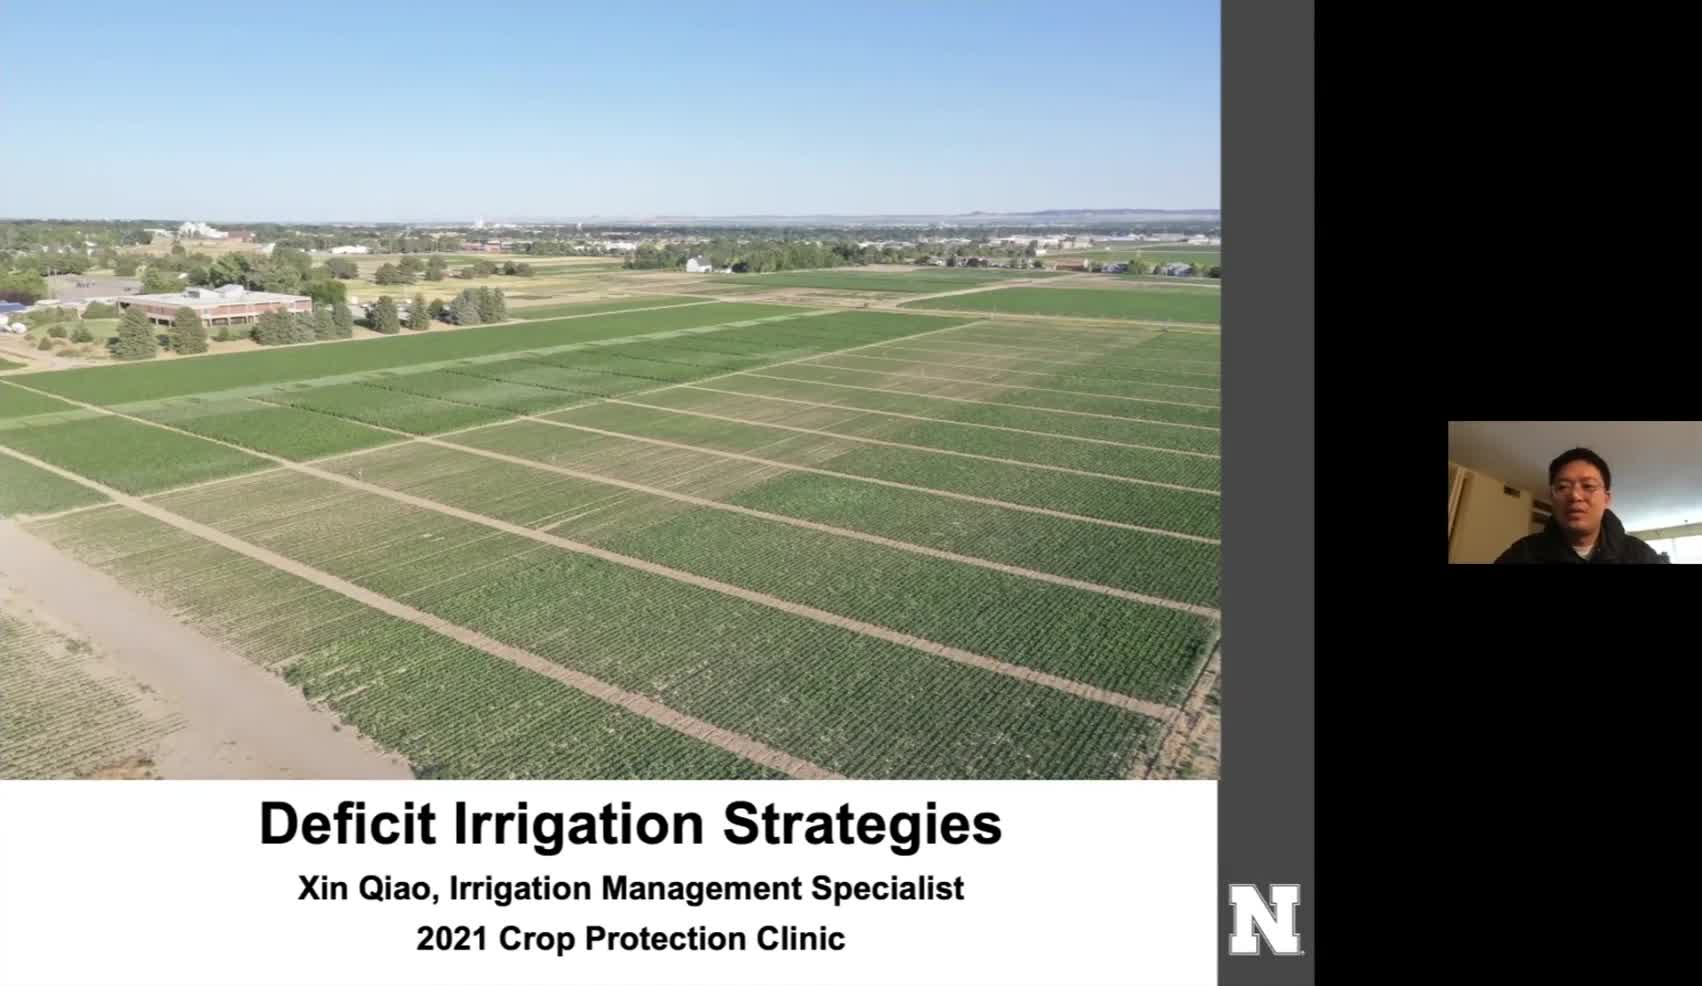 Deficit irrigation strategies for corn, sugar beets, and dry edible beans